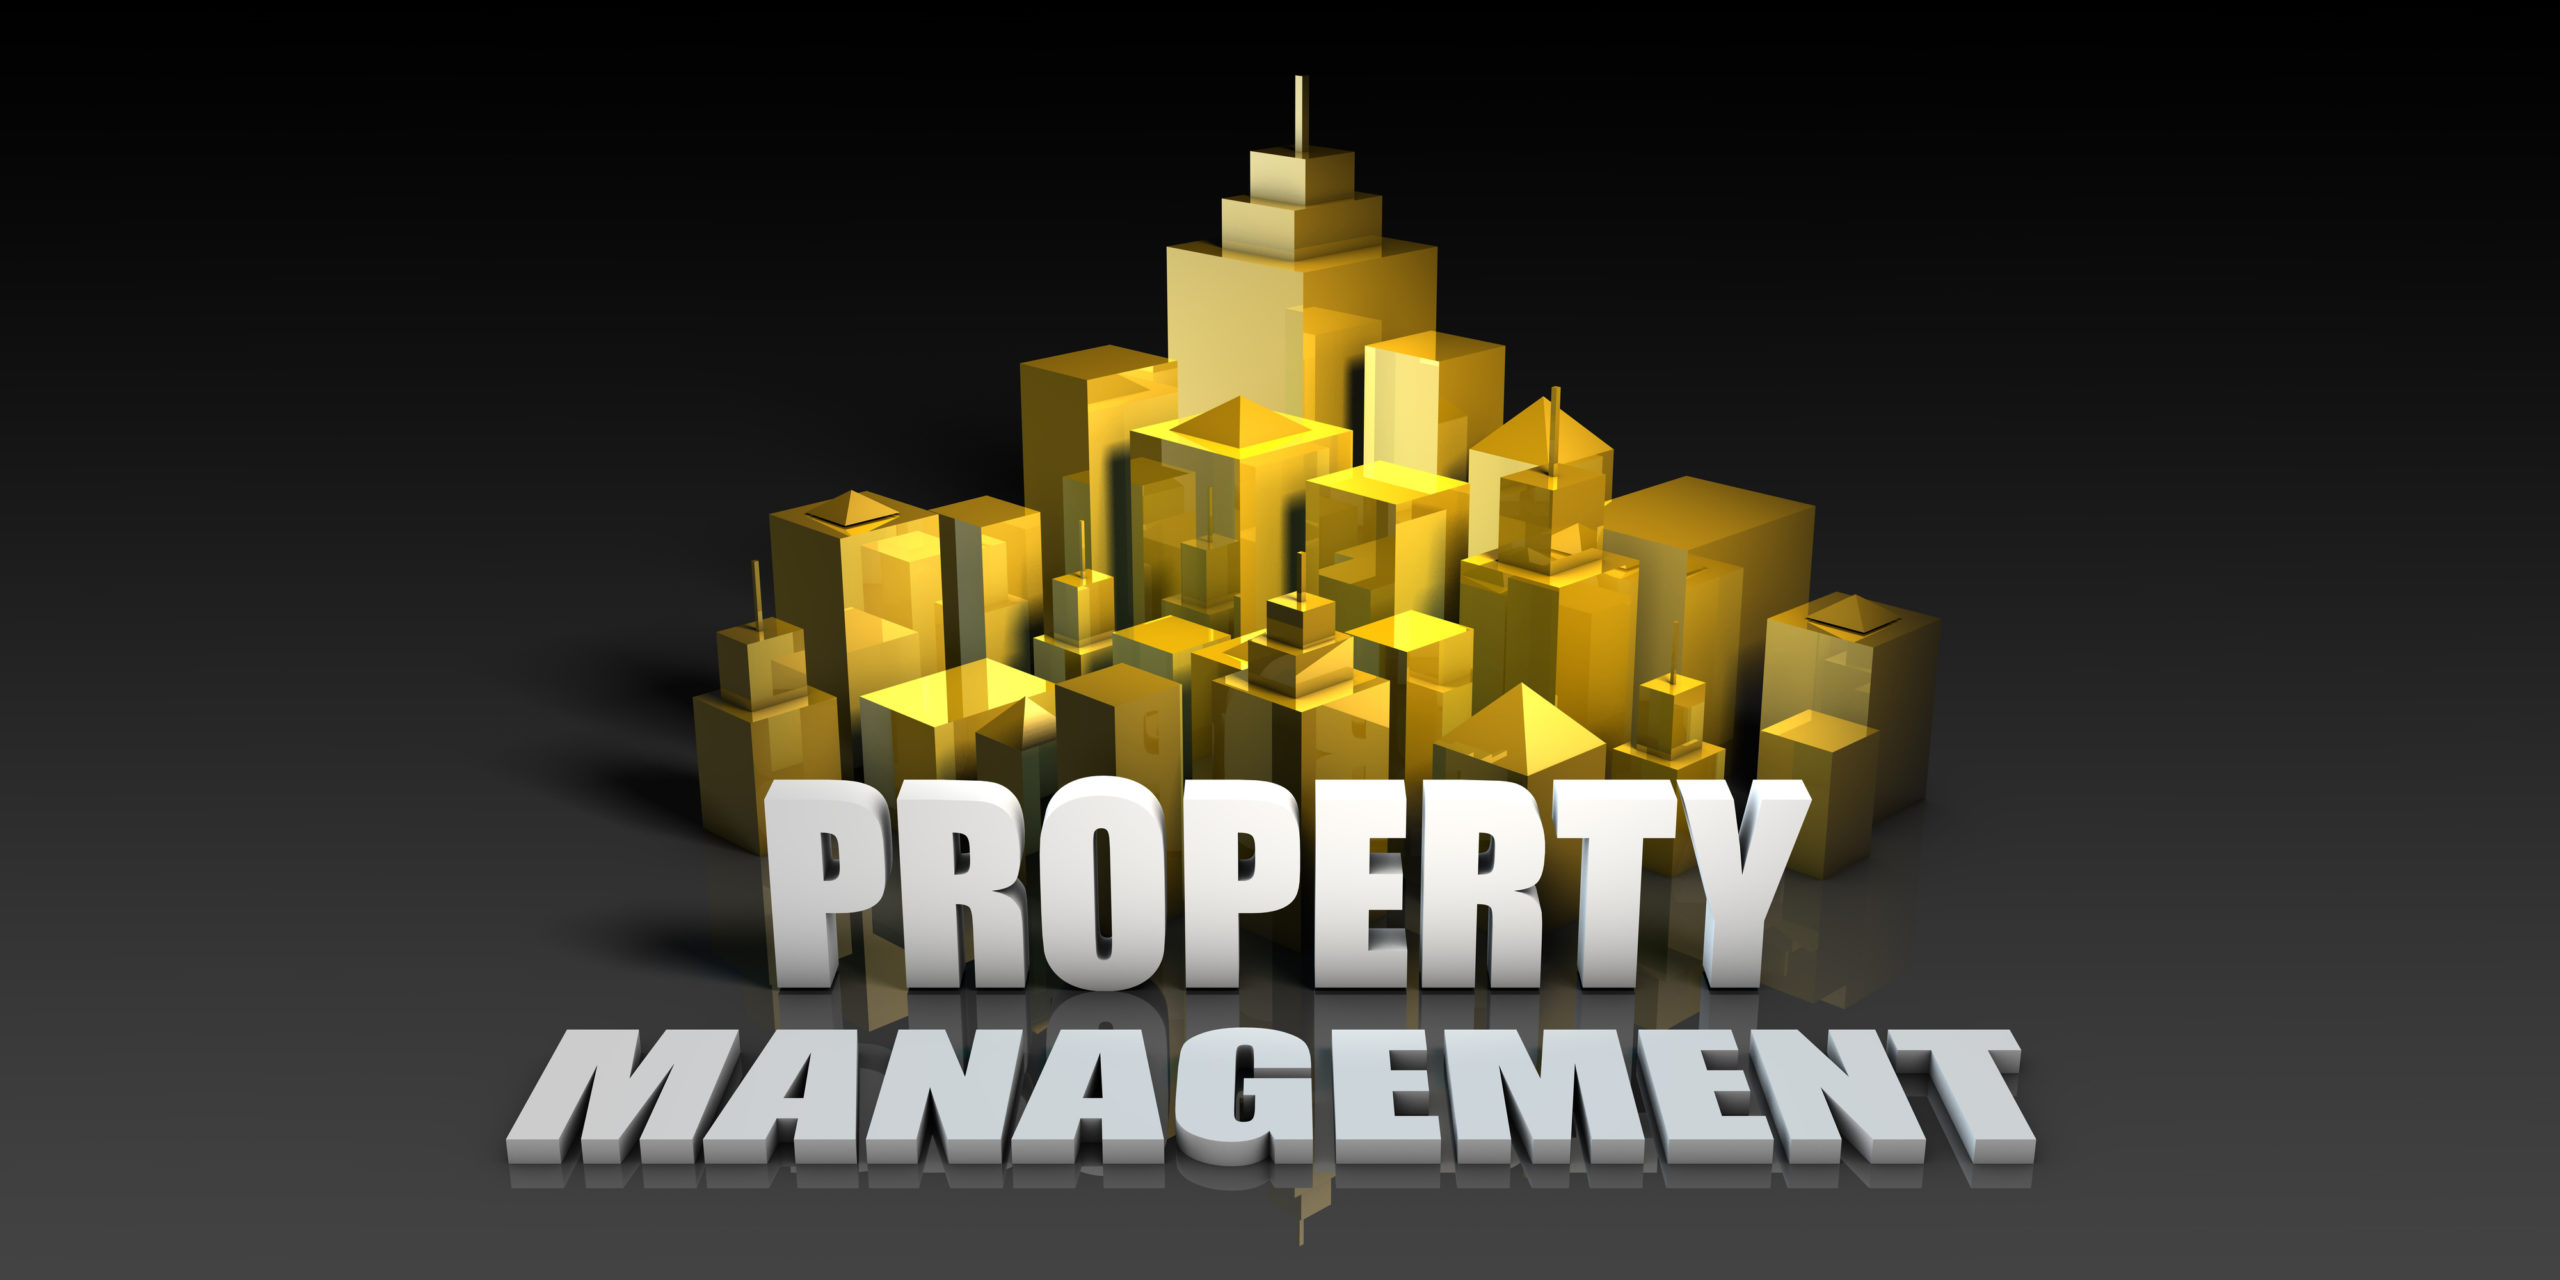 Property Management With Model of Golden City in the background